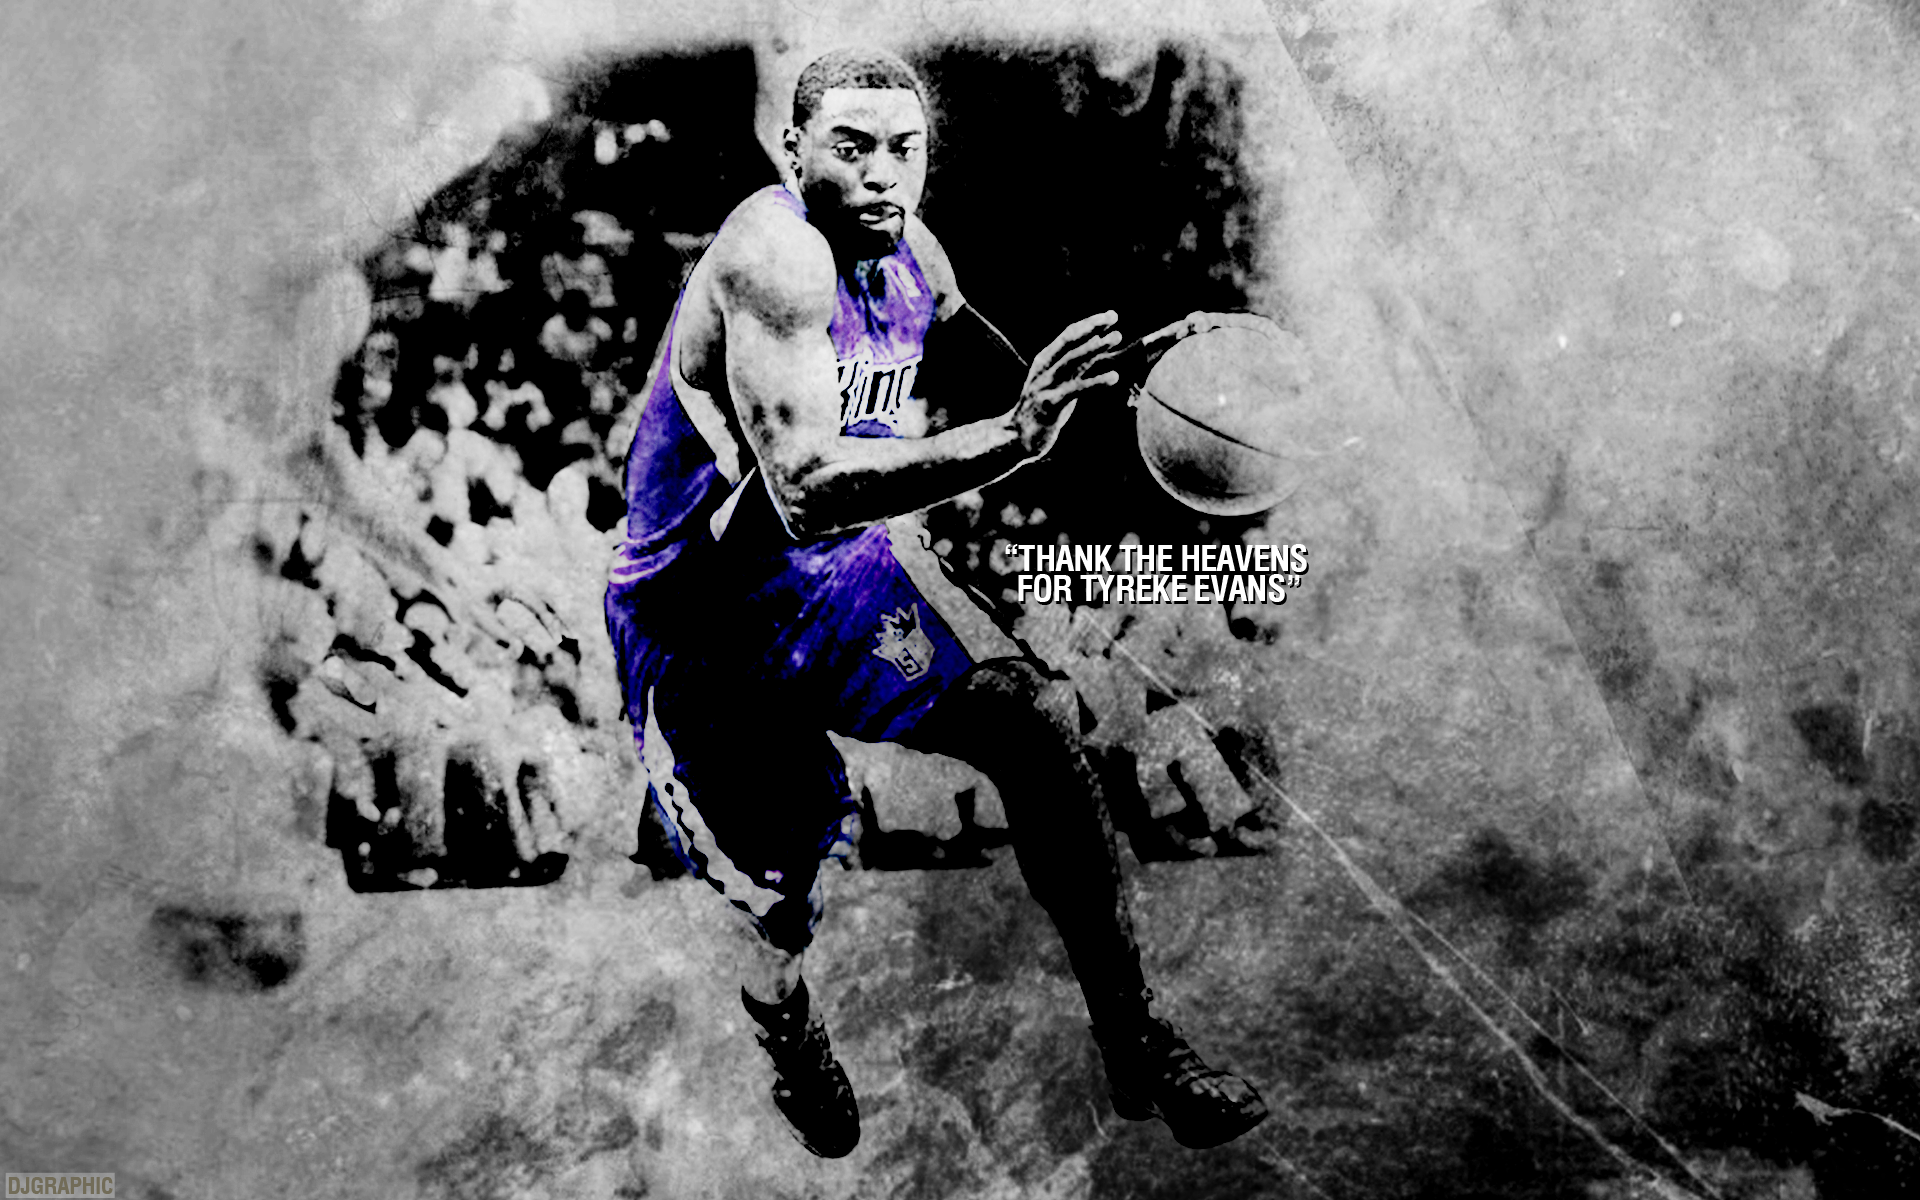 Tyreke Evans by DJgraphic 1920 x 1200 1920x1200